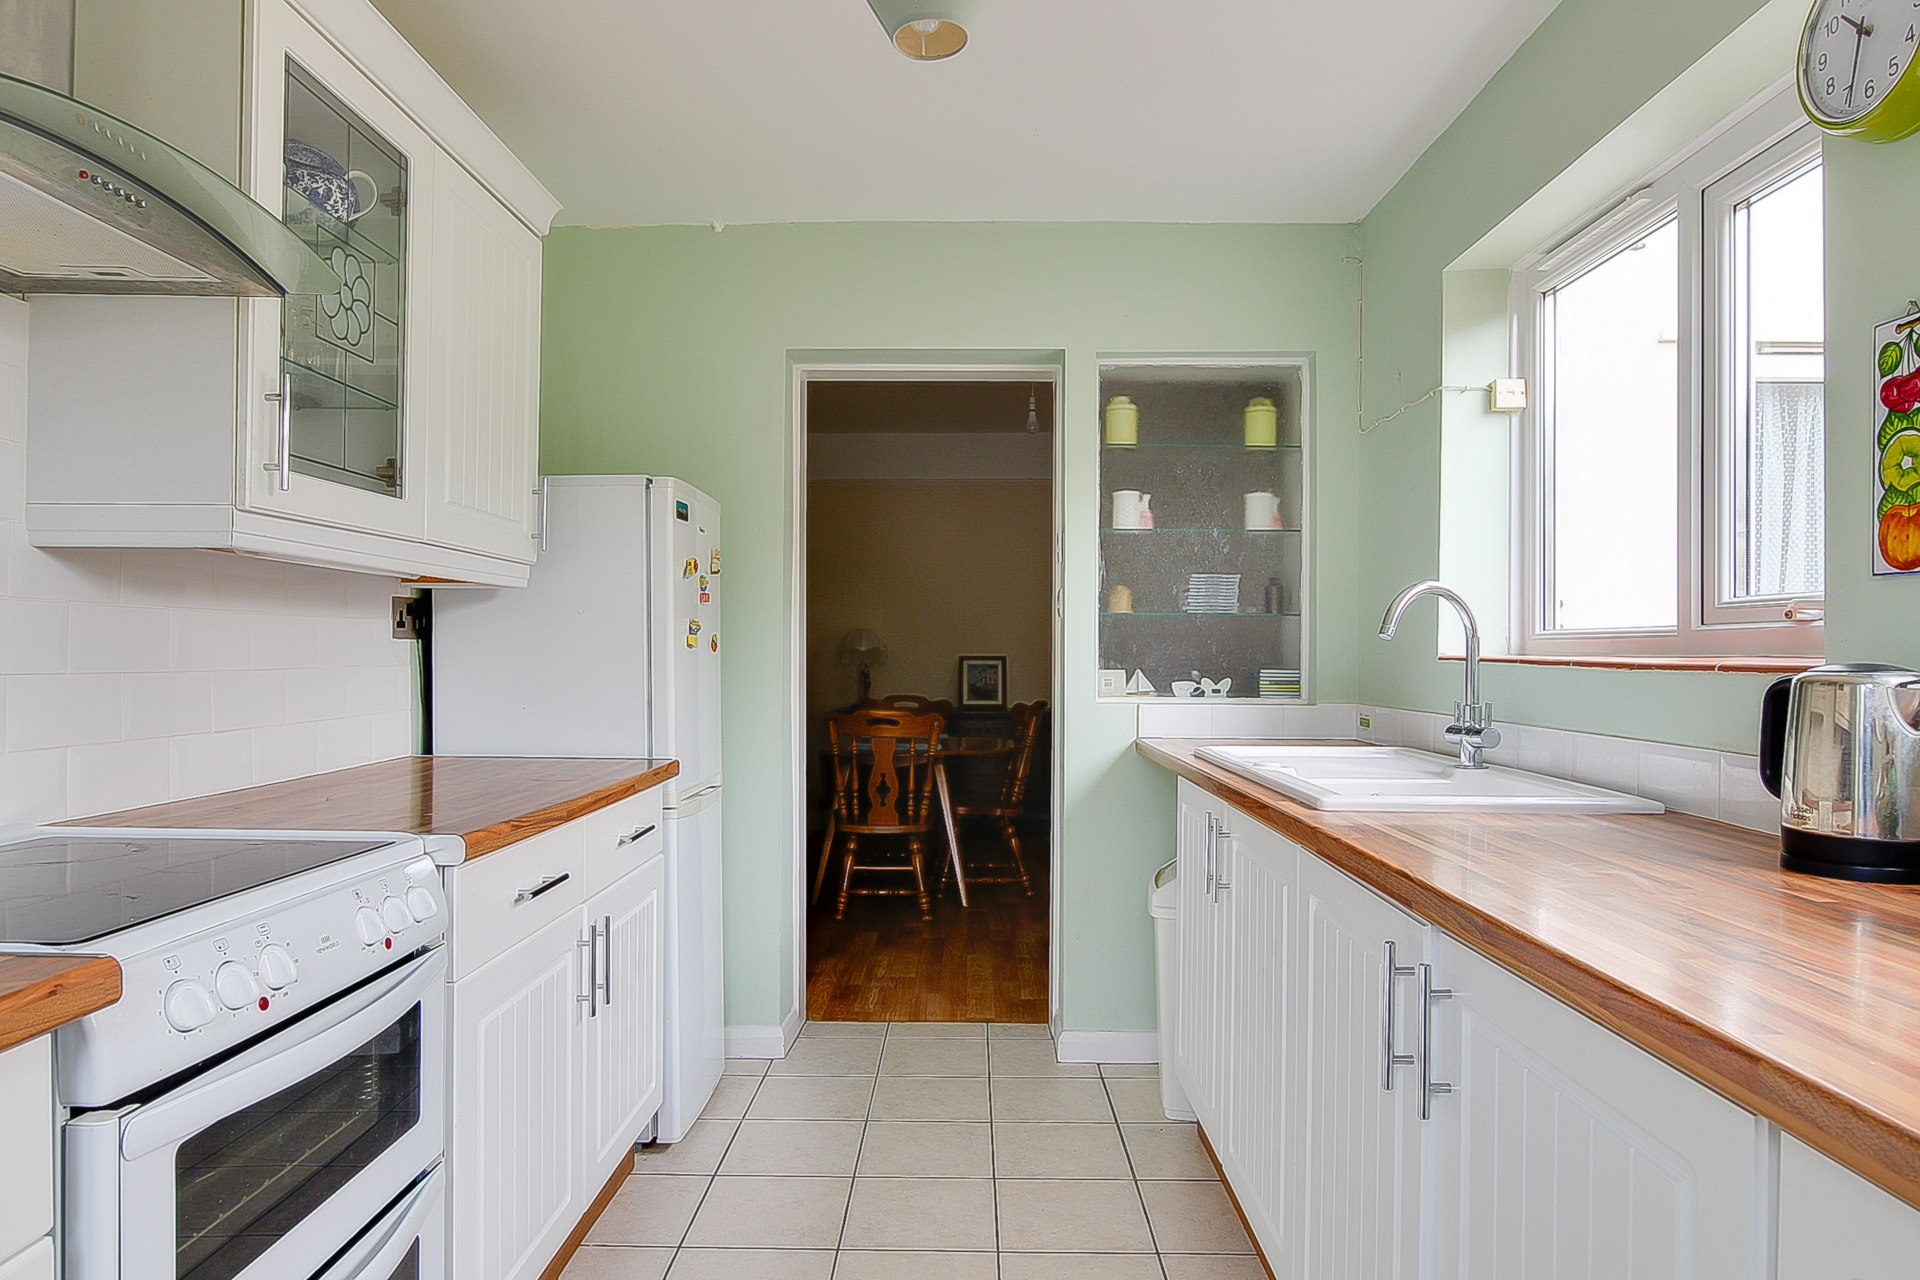 3 bed terraced house for sale in Ethelbert Road, Birchington, CT7  - Property Image 2